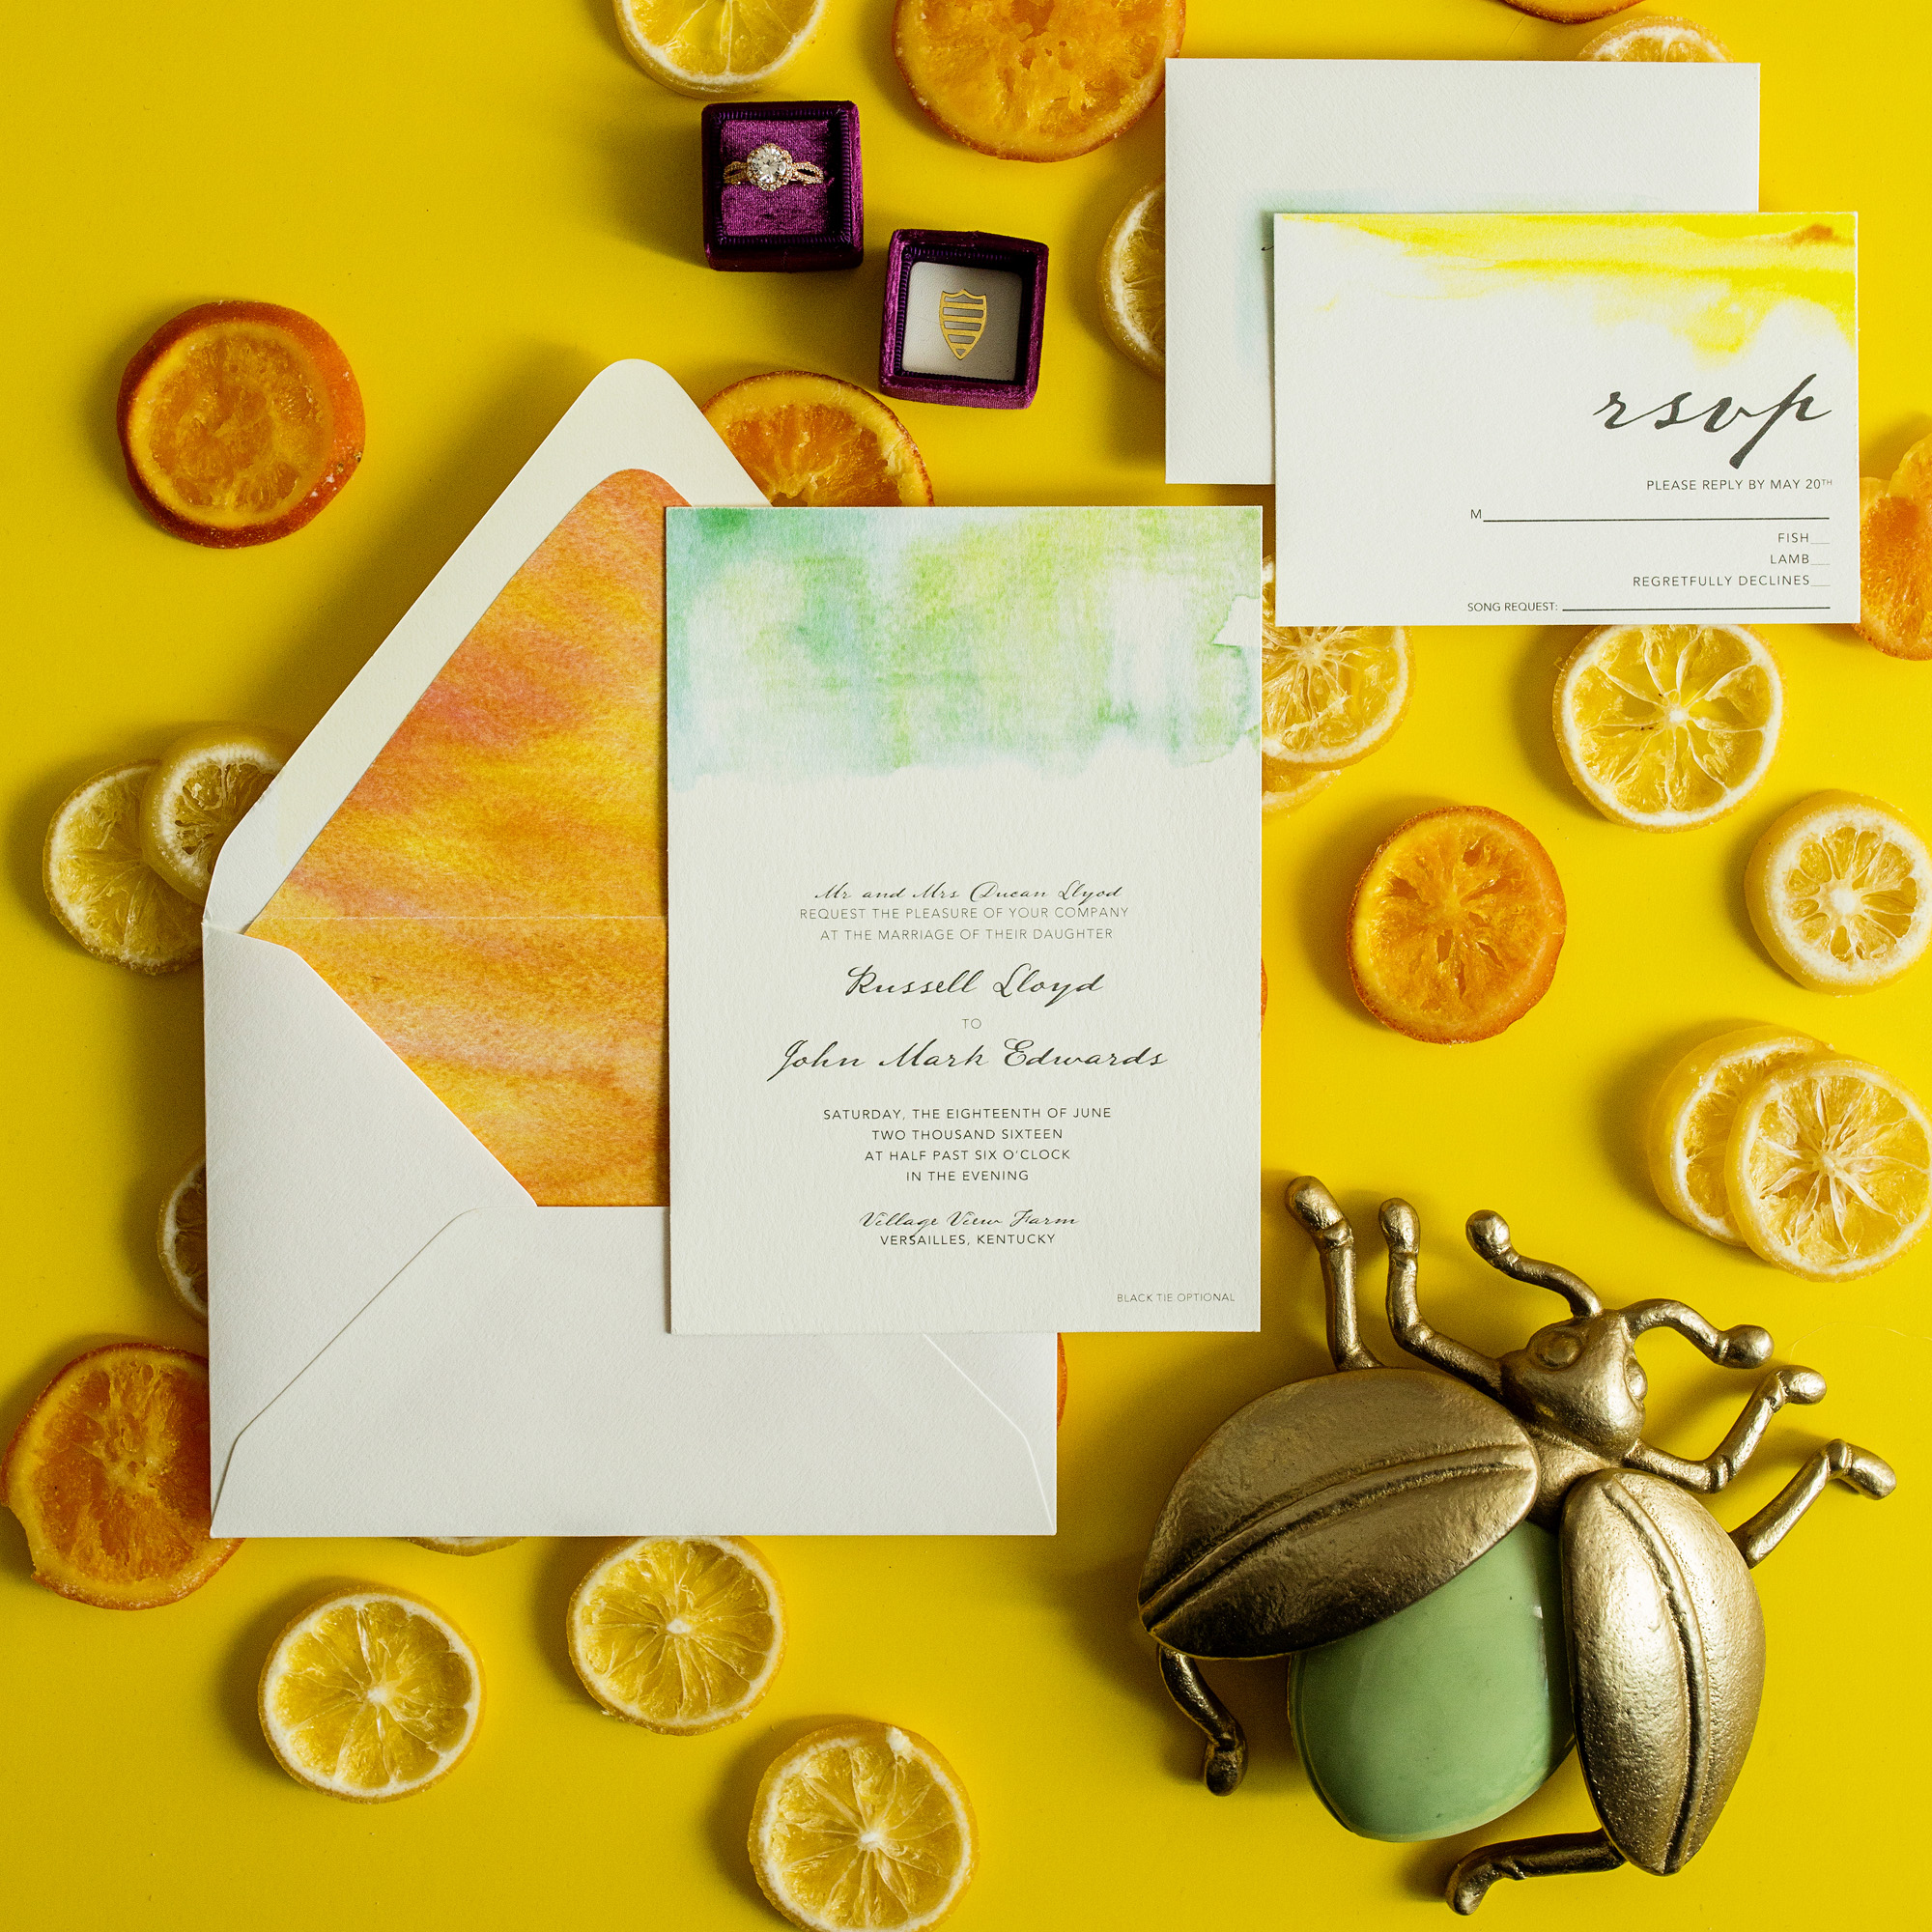 Seriously_Sabrina_Photography_Commercial_Simply_Done_Invites_2019_March_053